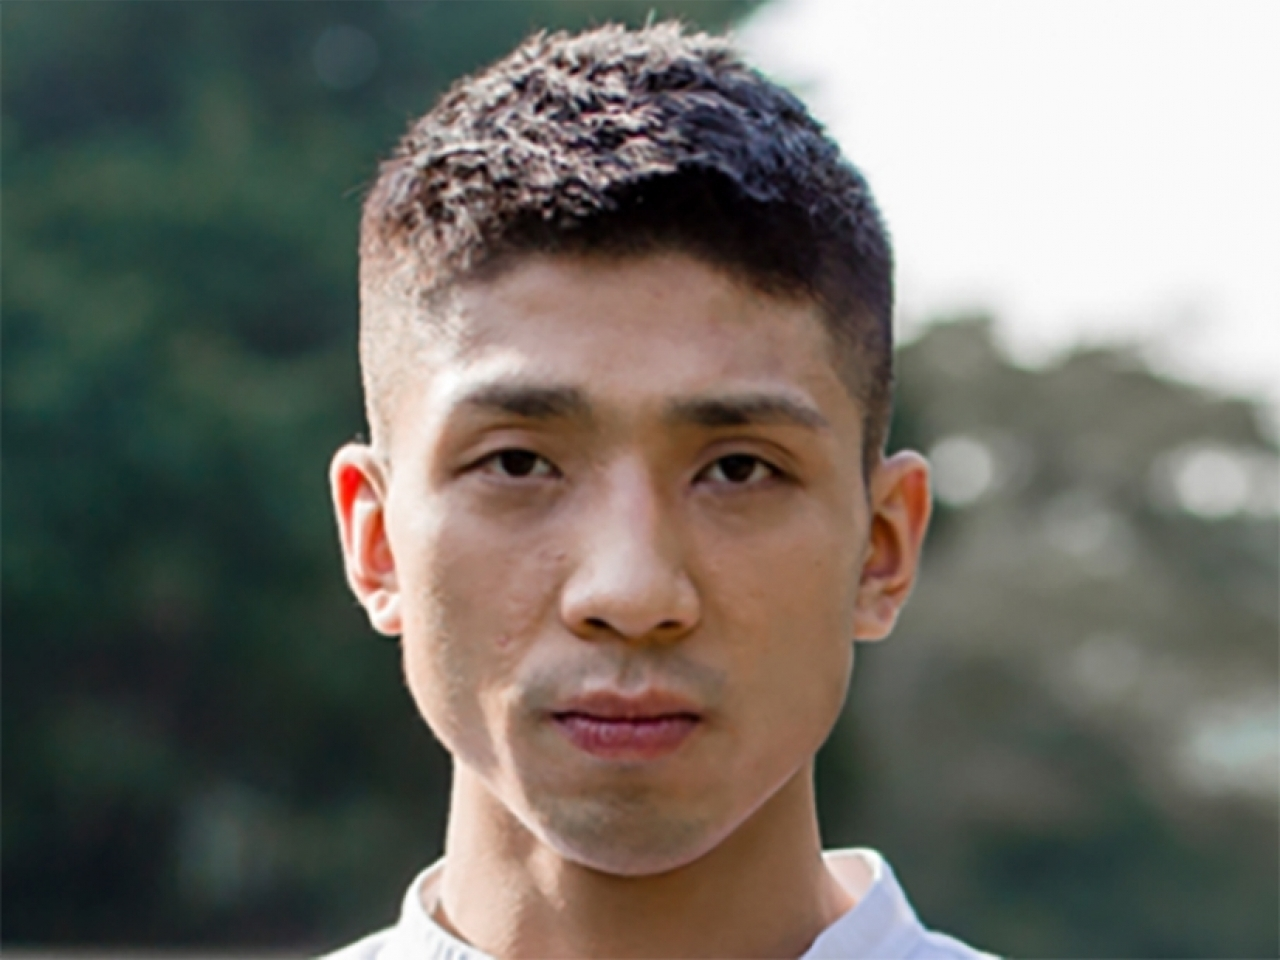 Owen Chow, 24, faces a subversion charge over his participation in a Legco primary held by the pro-democracy camp last summer.